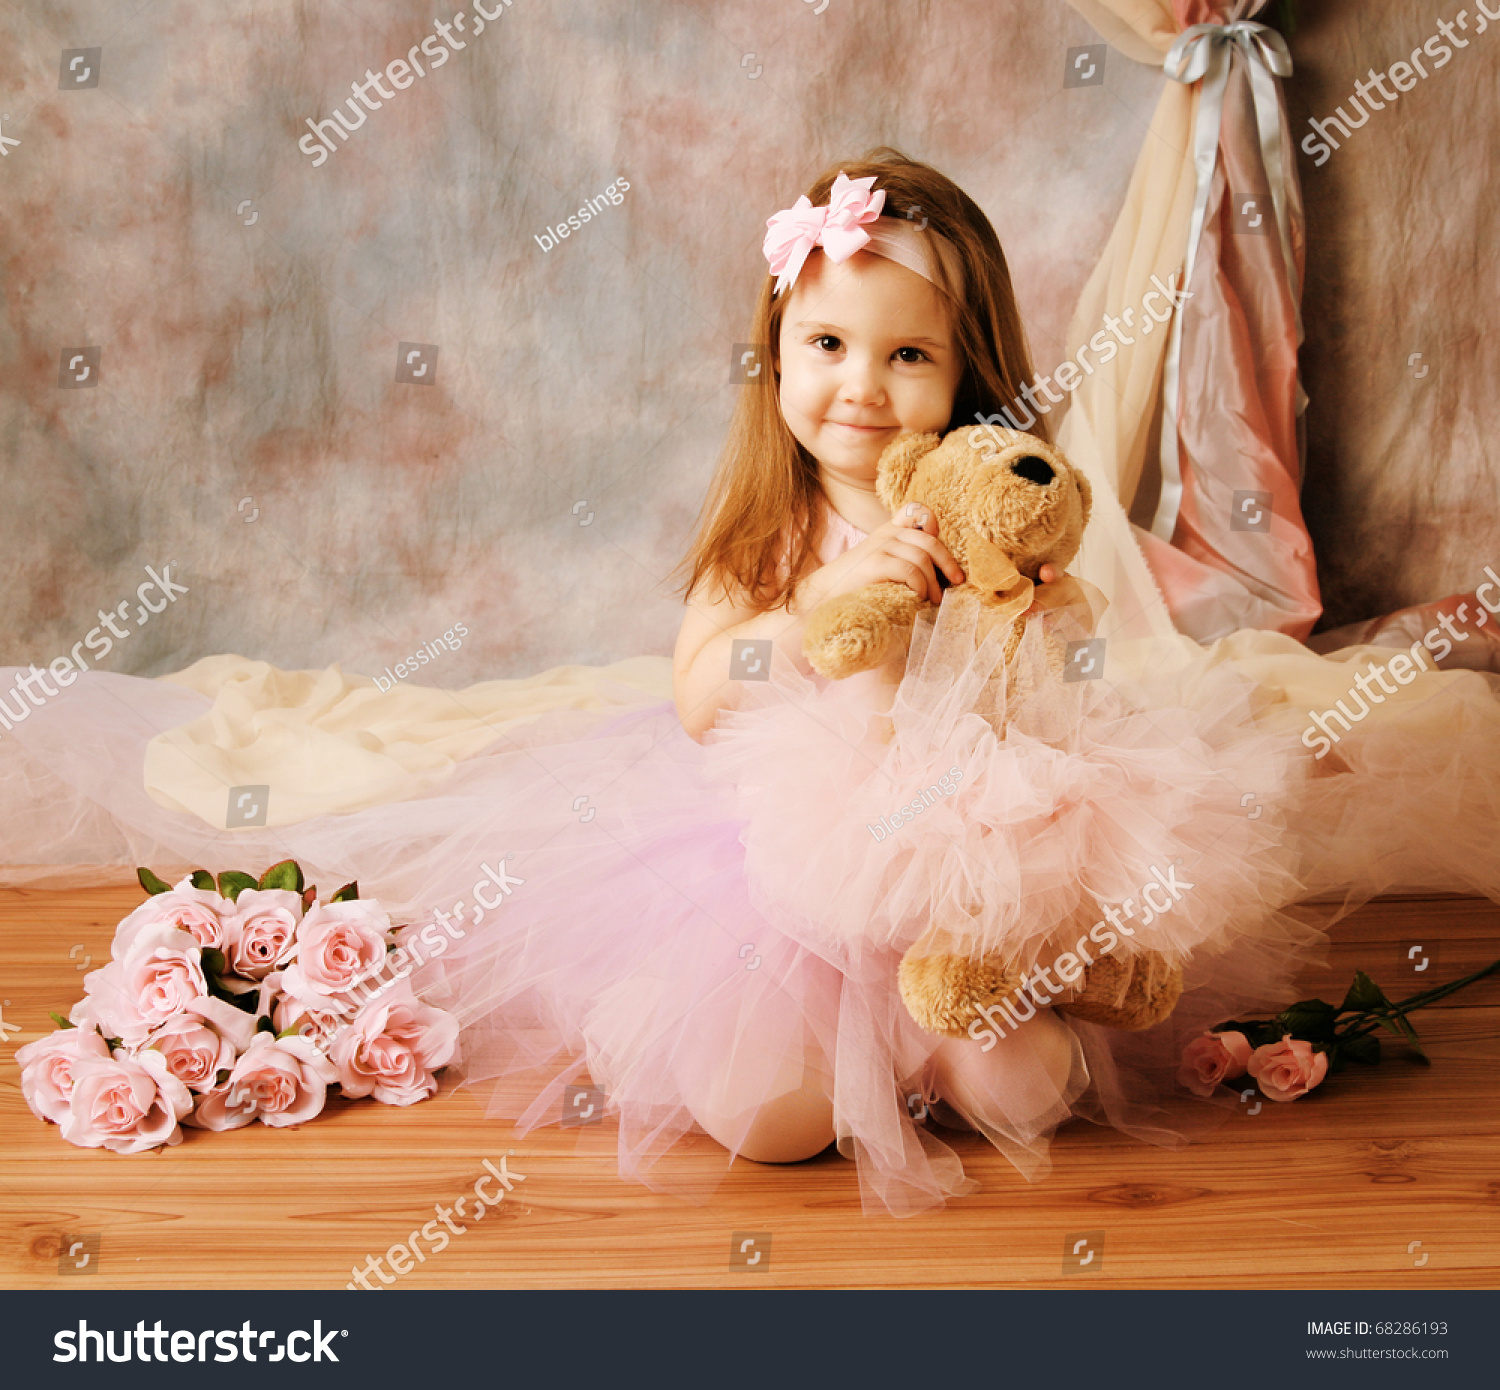 Girl Holding Teddy Bear Wallpapers Adorable Little Girl Dressed As A Ballerina In A Tutu